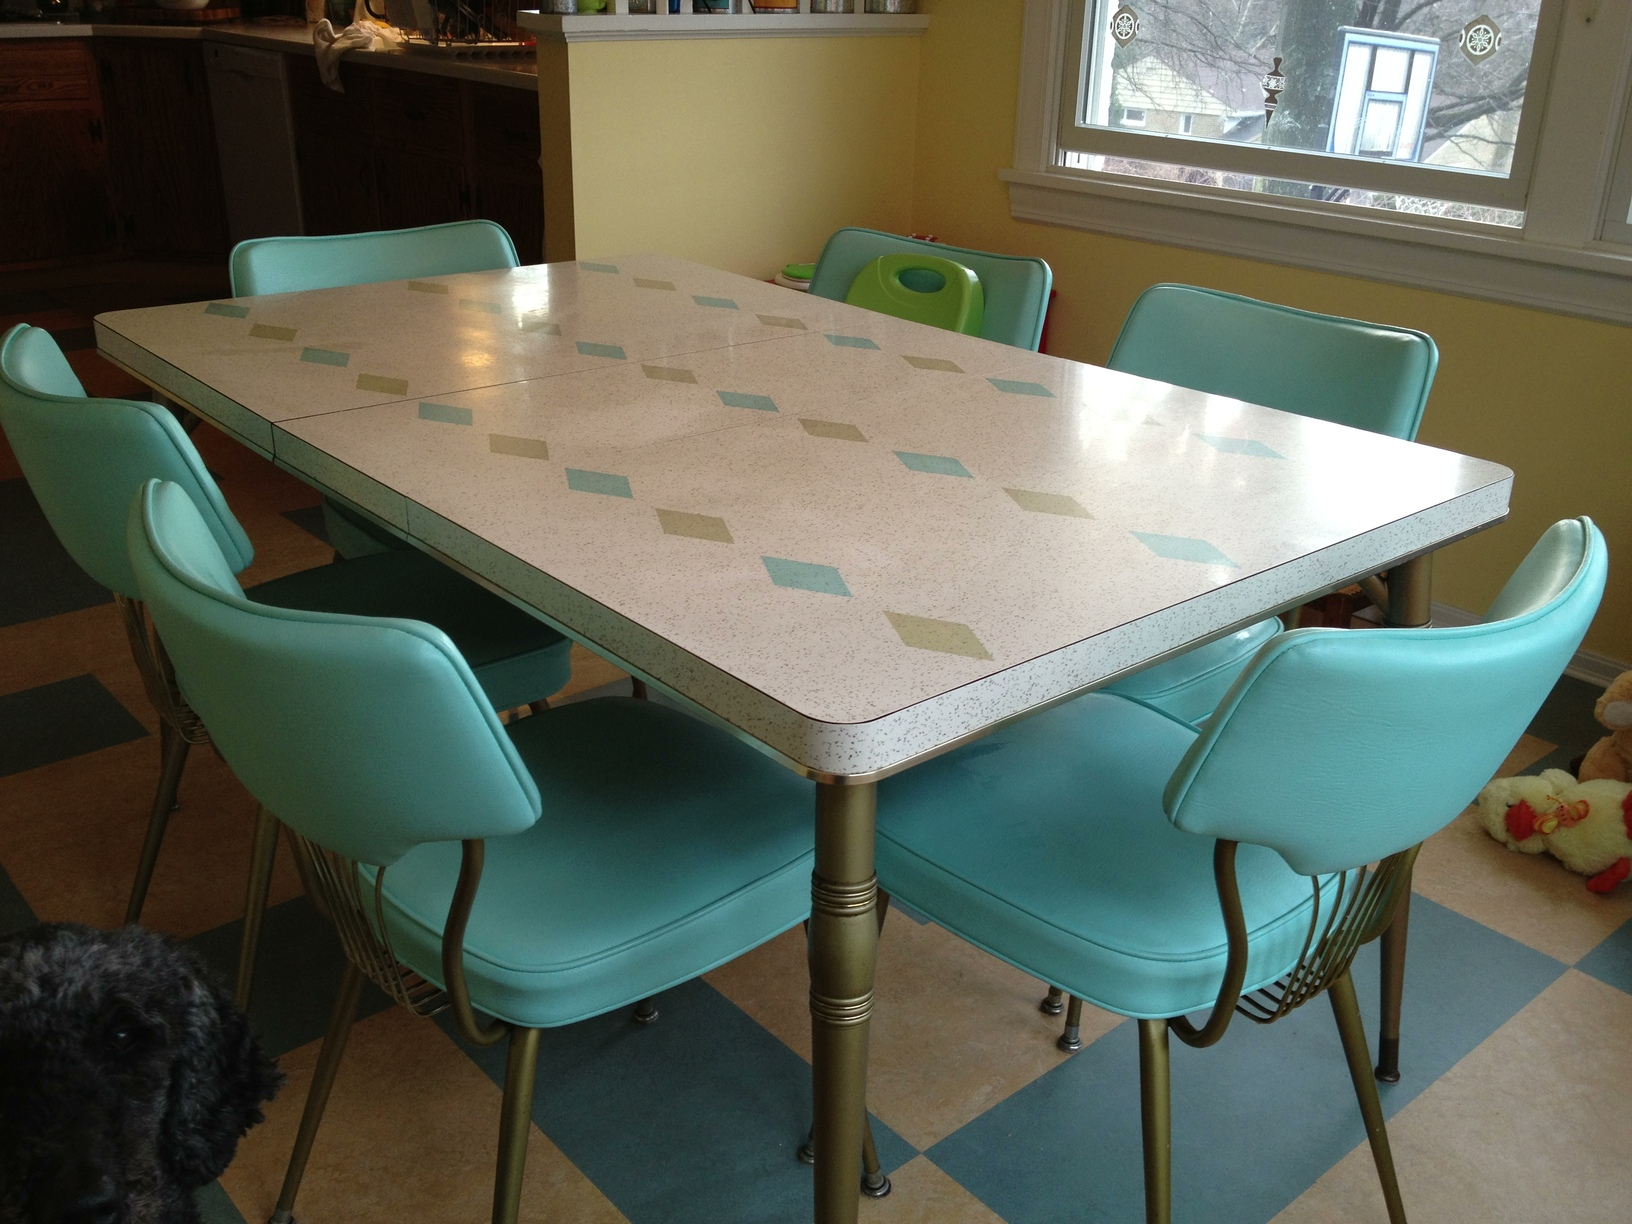 retro dining room table and chairs chair gym ab exercises dinette 62044071cf23708a01c982d5a129470ae286116a